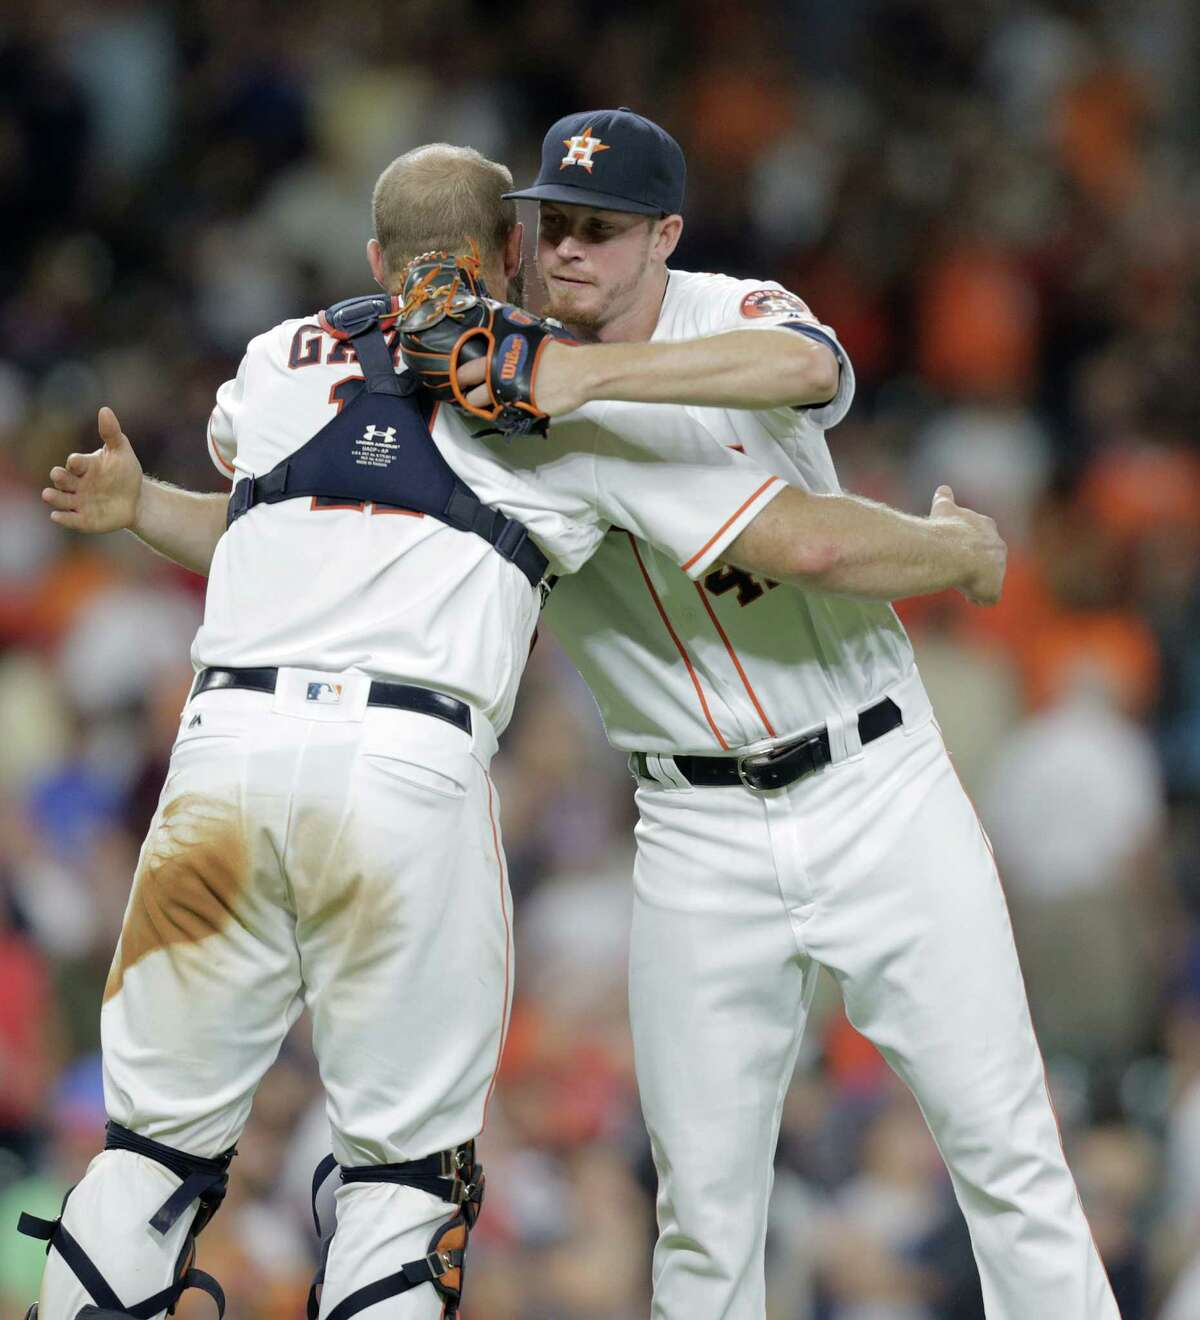 Houston Astros designated hitter Evan Gattis (11) and Houston Astros relief pitcher Chris Devenski (47) celebrate the 6-2 win over Tampa. Photos of game two between Houston Astros and Tampa Bay Rays on Saturday, Aug. 27, 2016, in Houston. Astros lead the series 1-0.